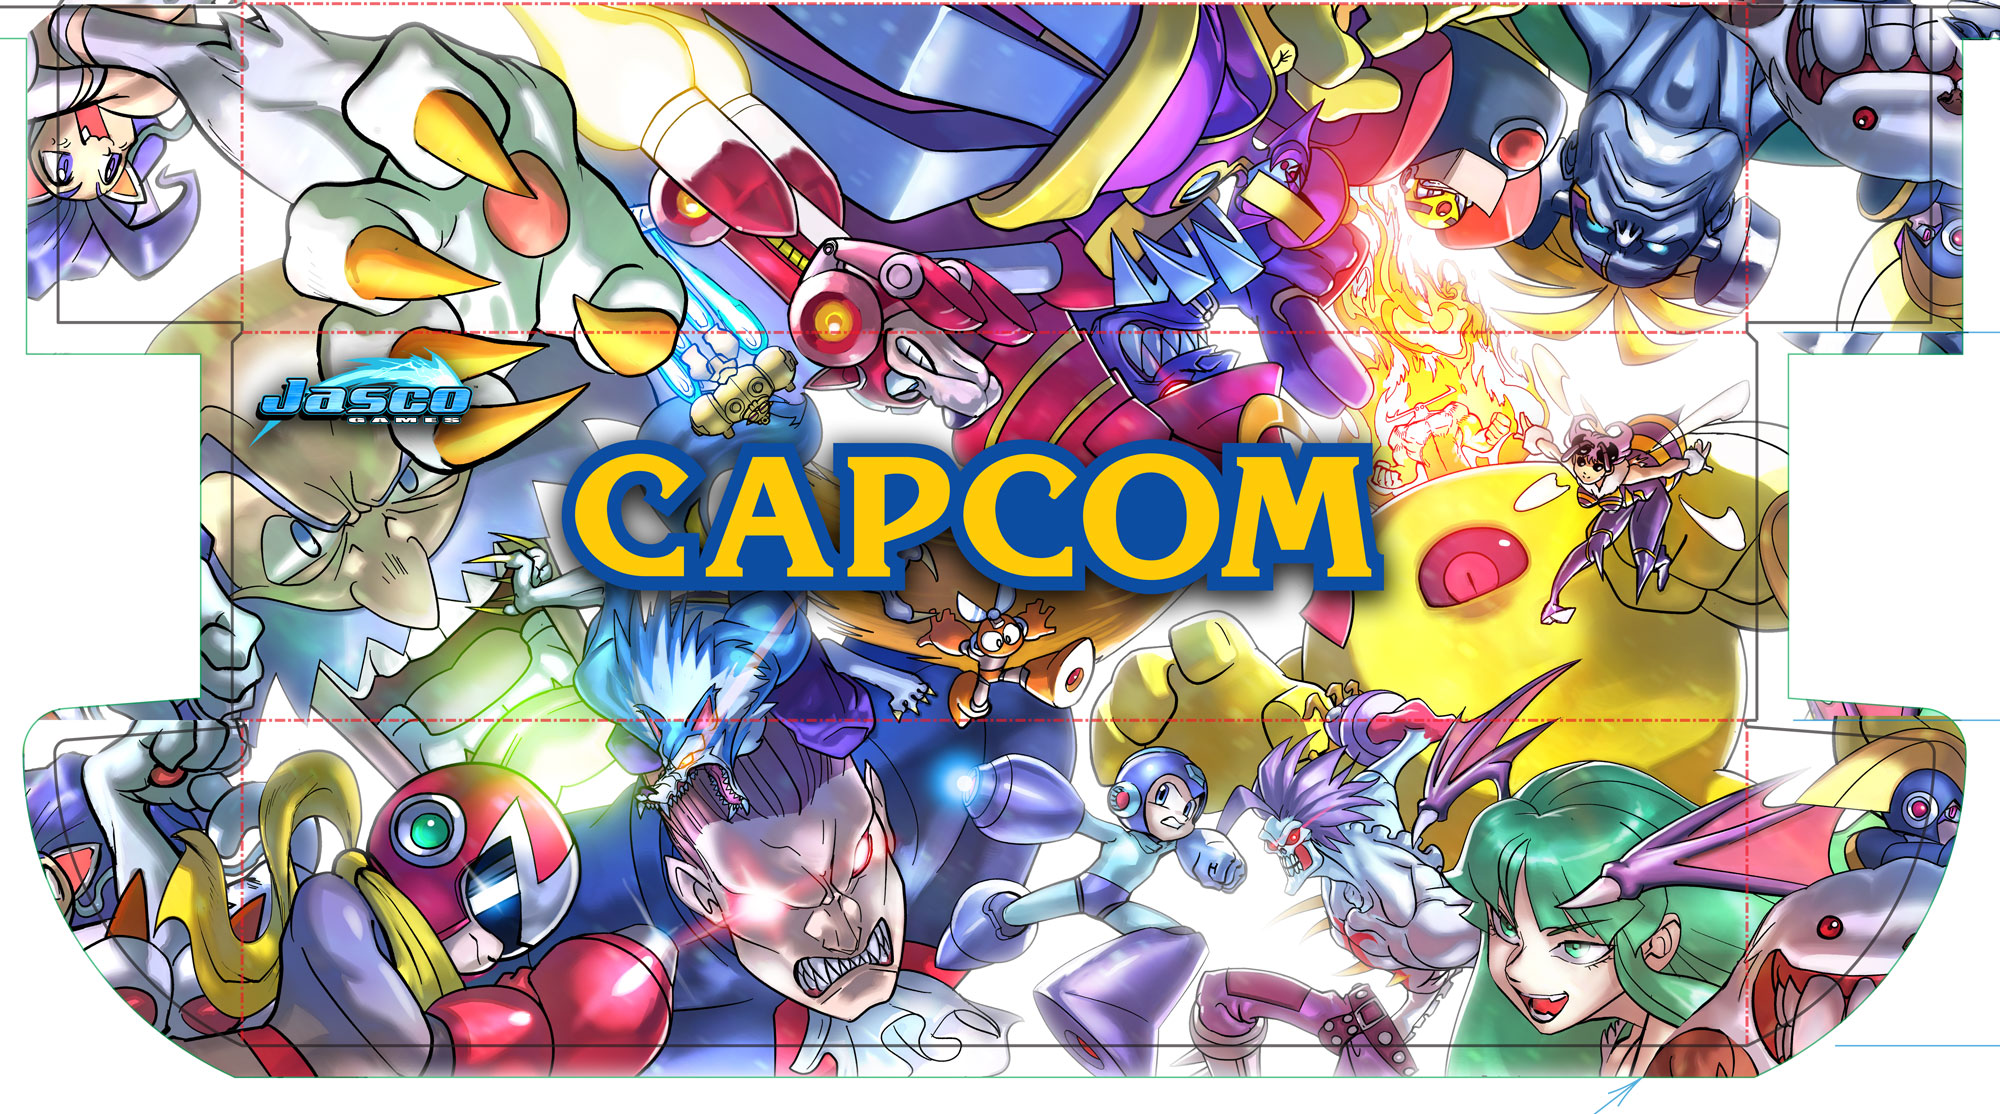 Megaman VS Darkstalkers UFS Casual Play Kit Box Wrap